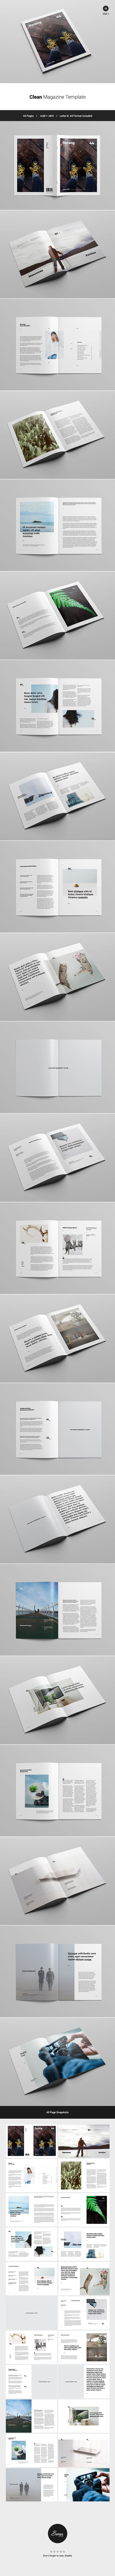 Clean & minimalist InDesign magazine template.Available in Letter & A4 format, download it here https://graphicriver.net/item/clean-magazine-template/17023018?ref=bornx #graphicriver #envato #market #creative #design #magazine #template #indesign #adobe #layout #editorial #inspirations #ideas #press #publications #tableofcontents #table #of #contents #magz